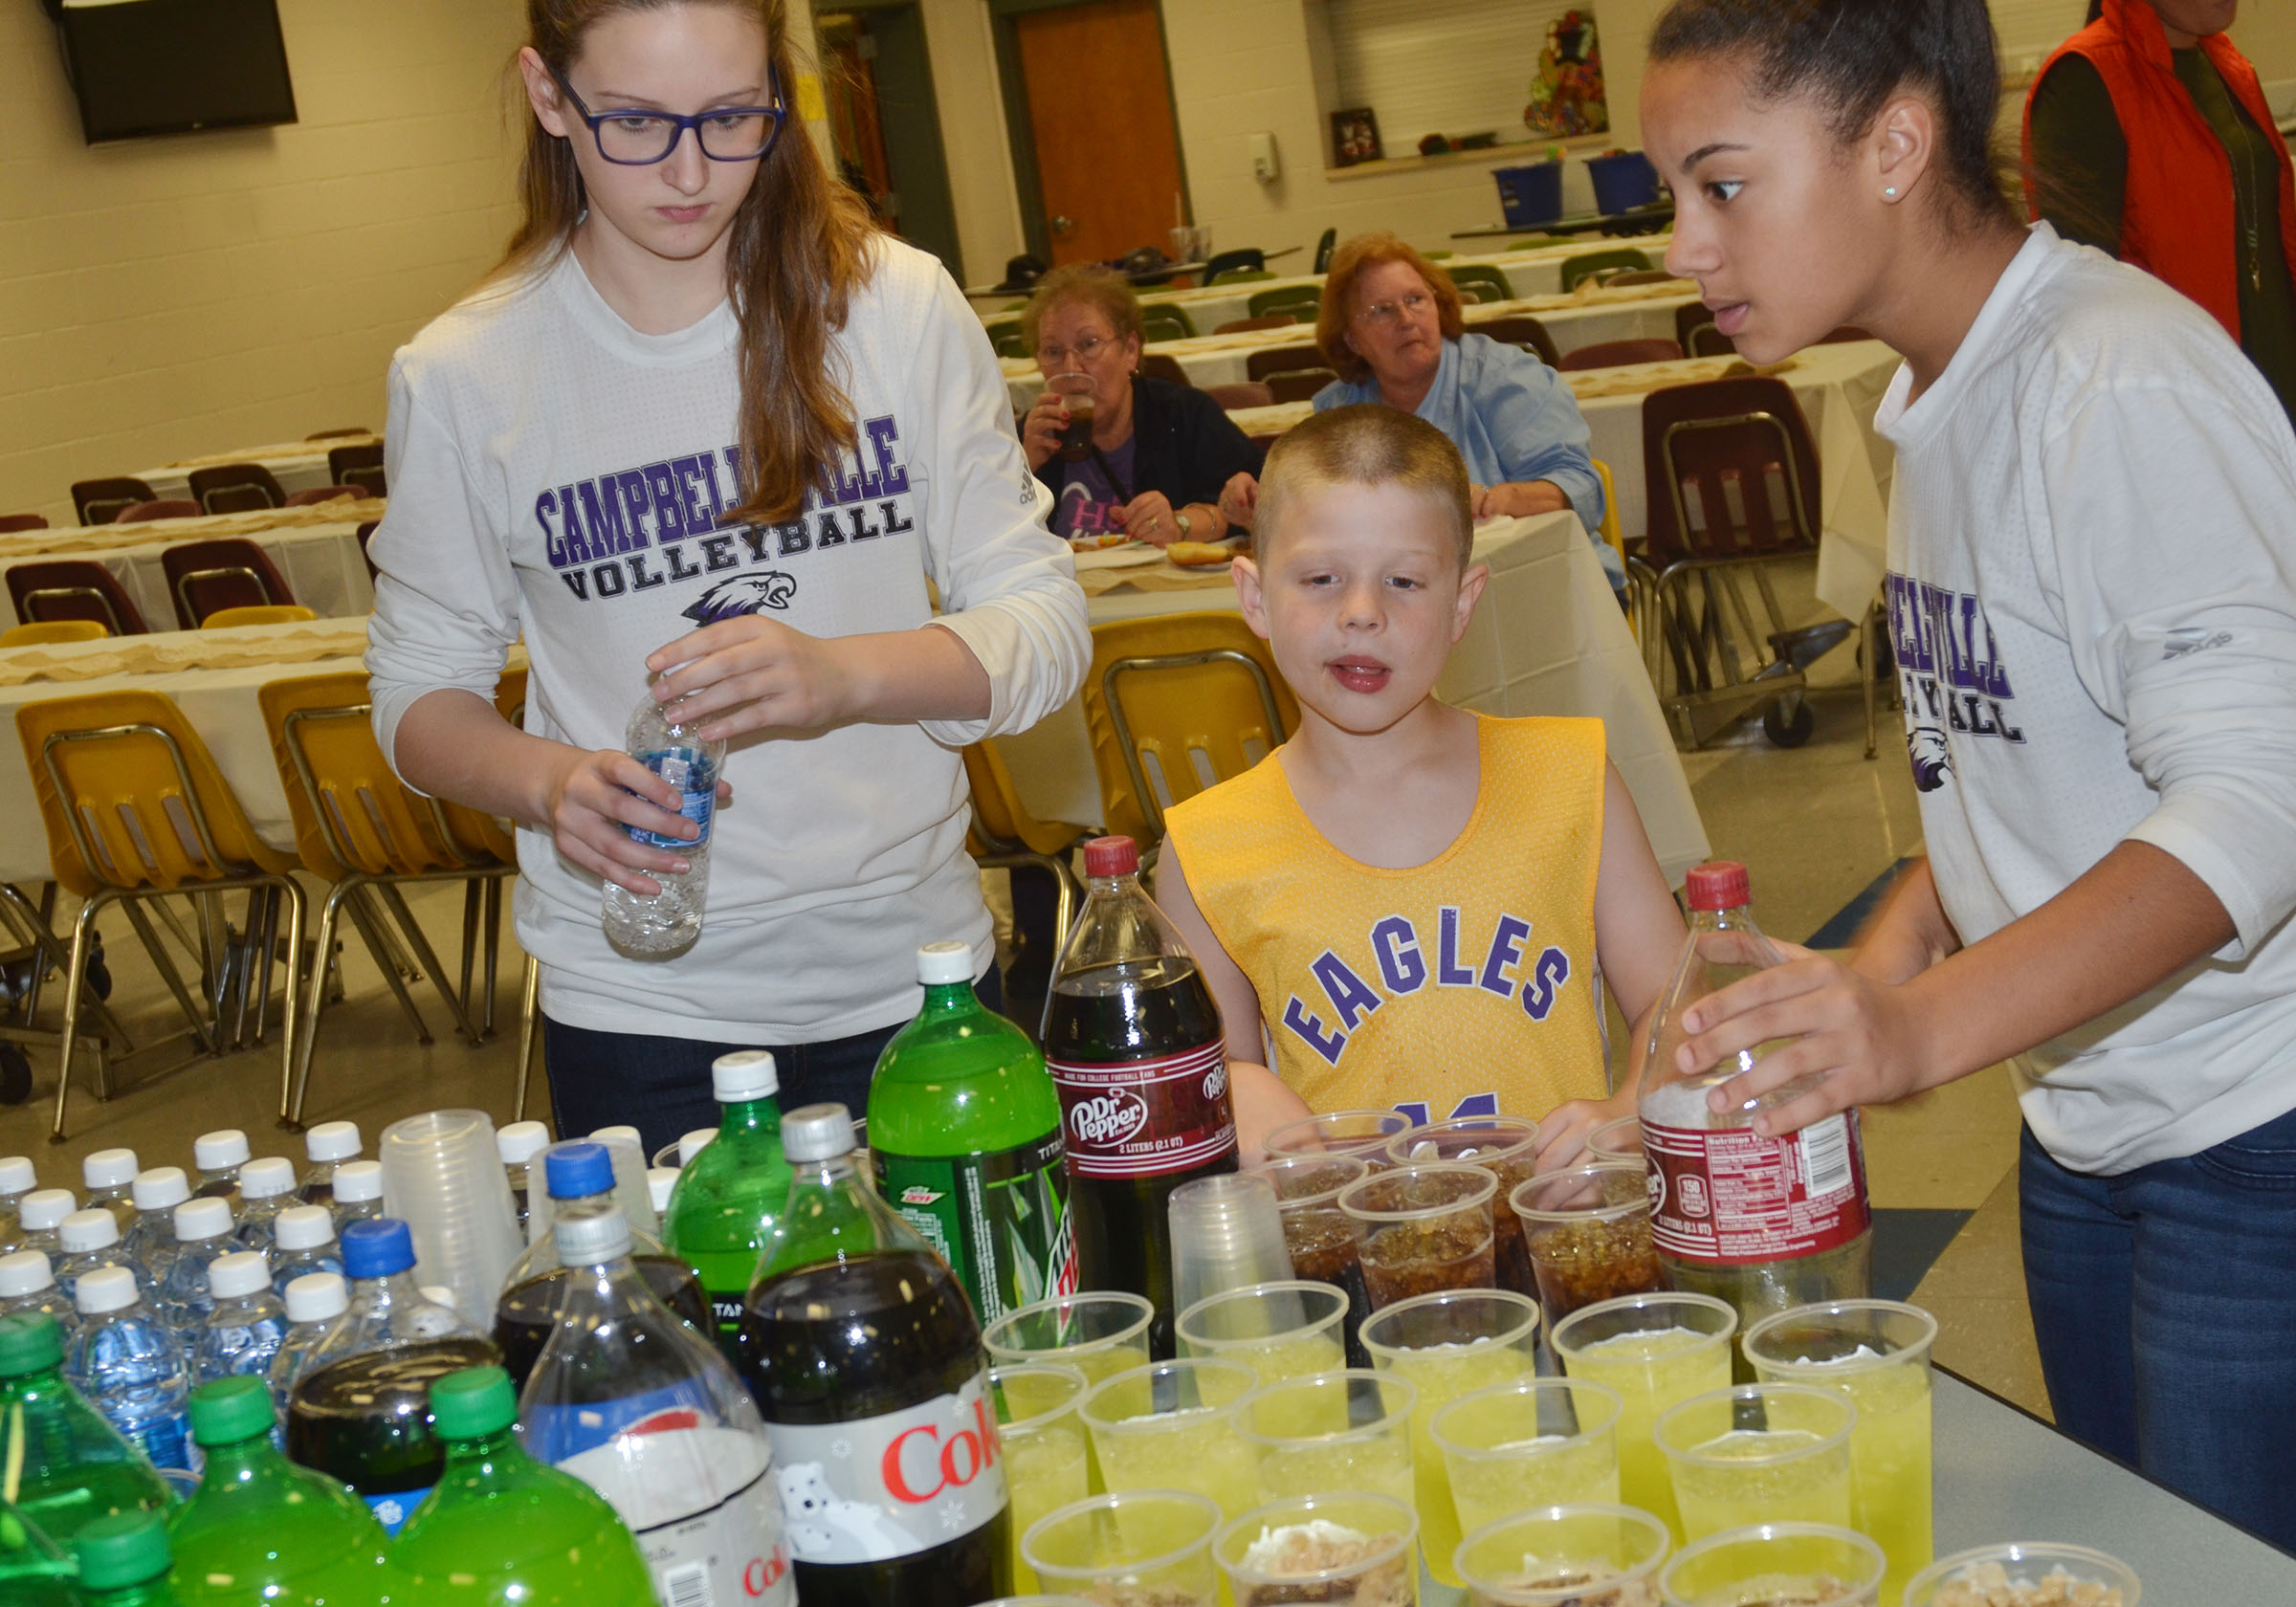 CMS volleyball players Zoie Sidebottom, at left, and Laci Hodgens, eighth-graders, serve Campbellsville Elementary School first-grader Brody Sidebottom a drink.